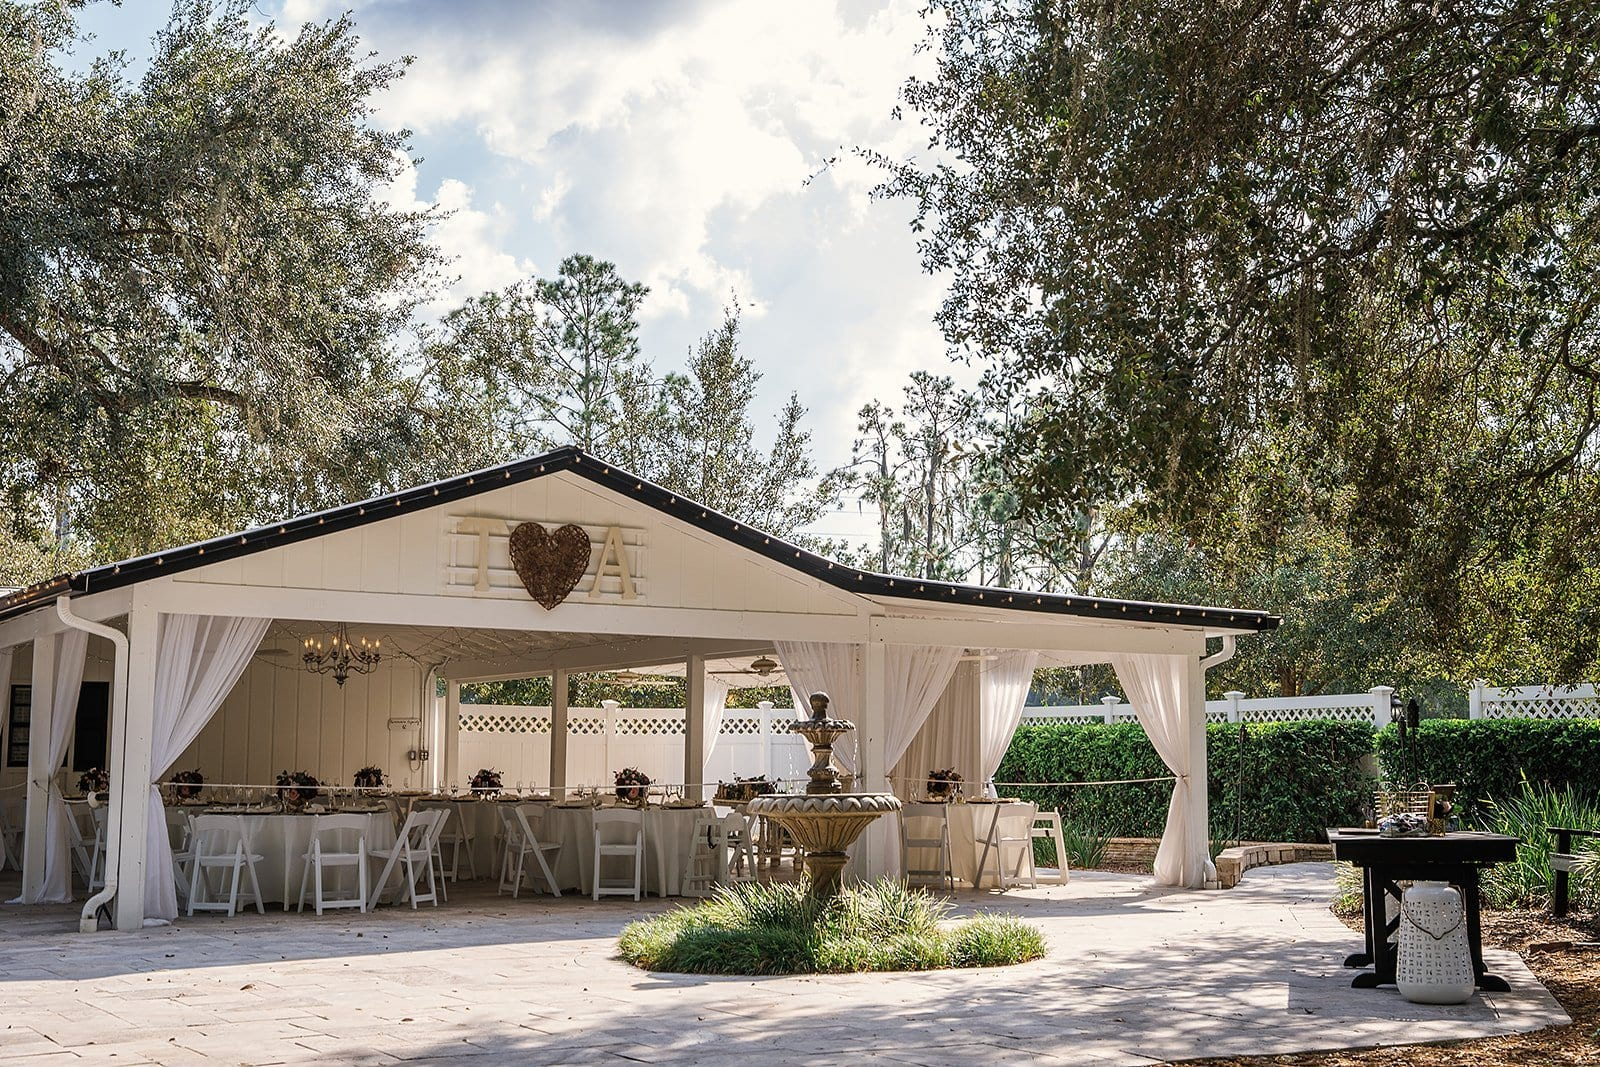 The French Country Inn Wedding Venue